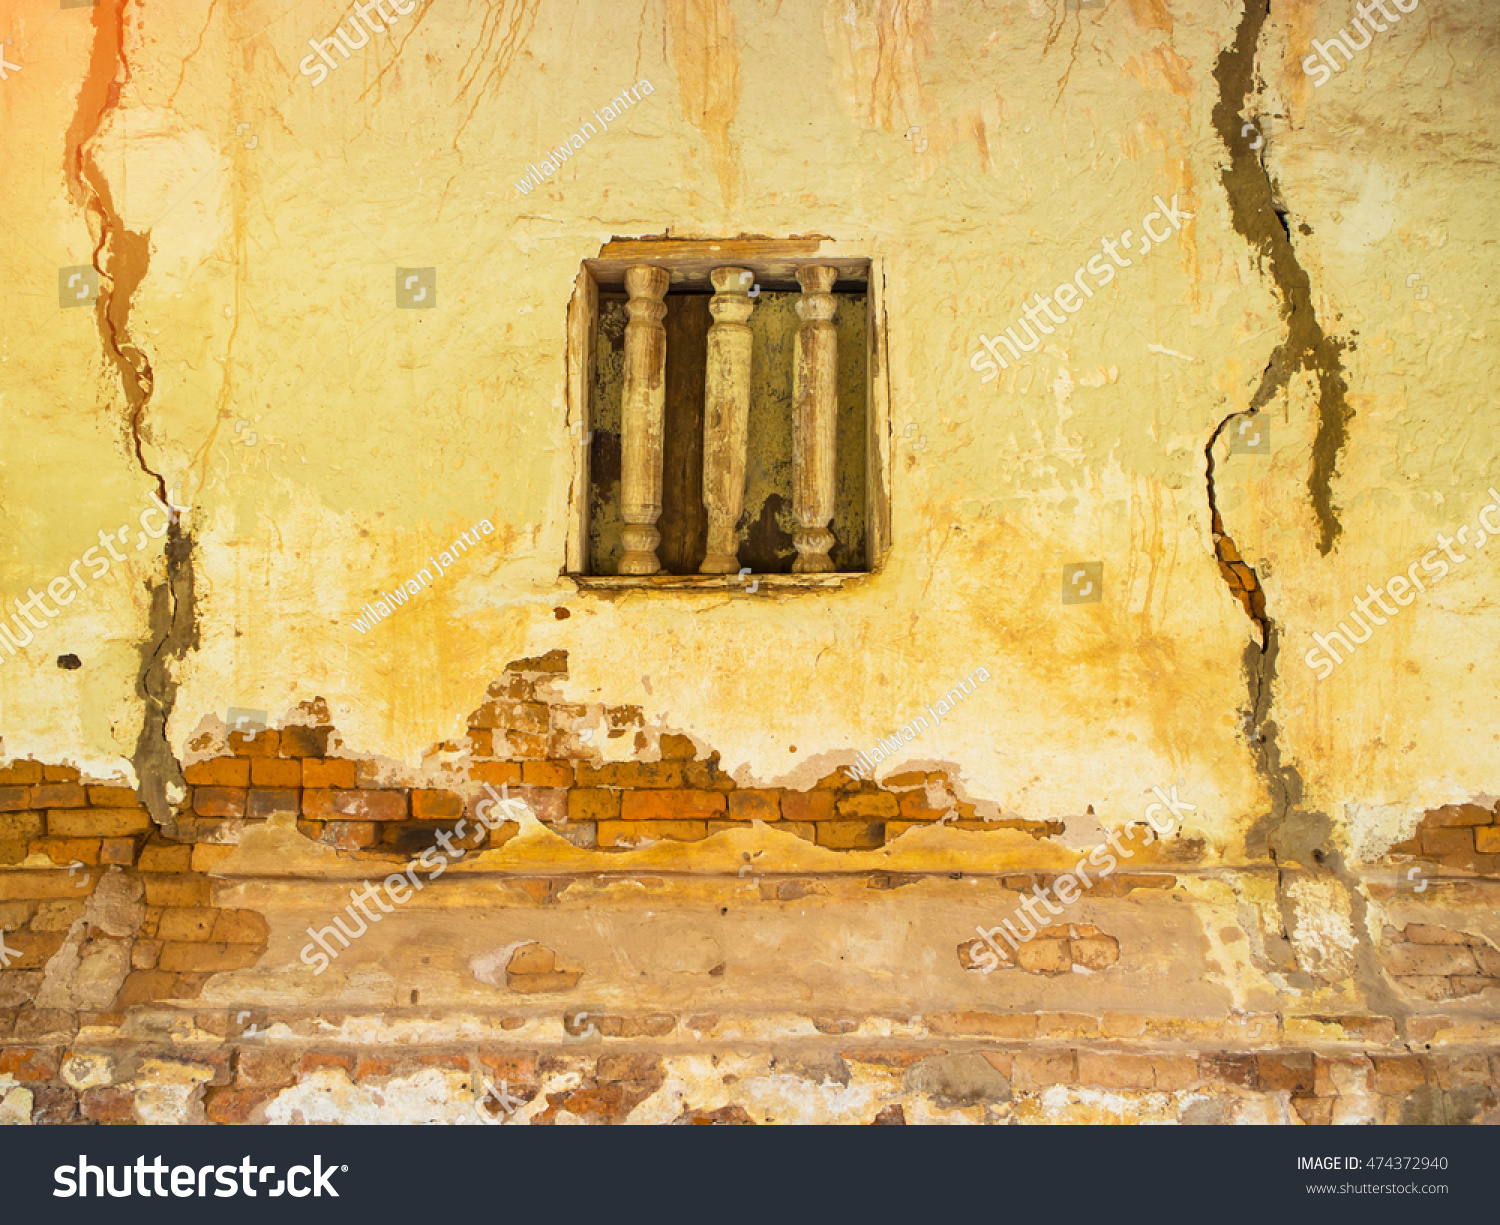 Royalty-free Old wall with peeling paint, scratched… #474372940 ...